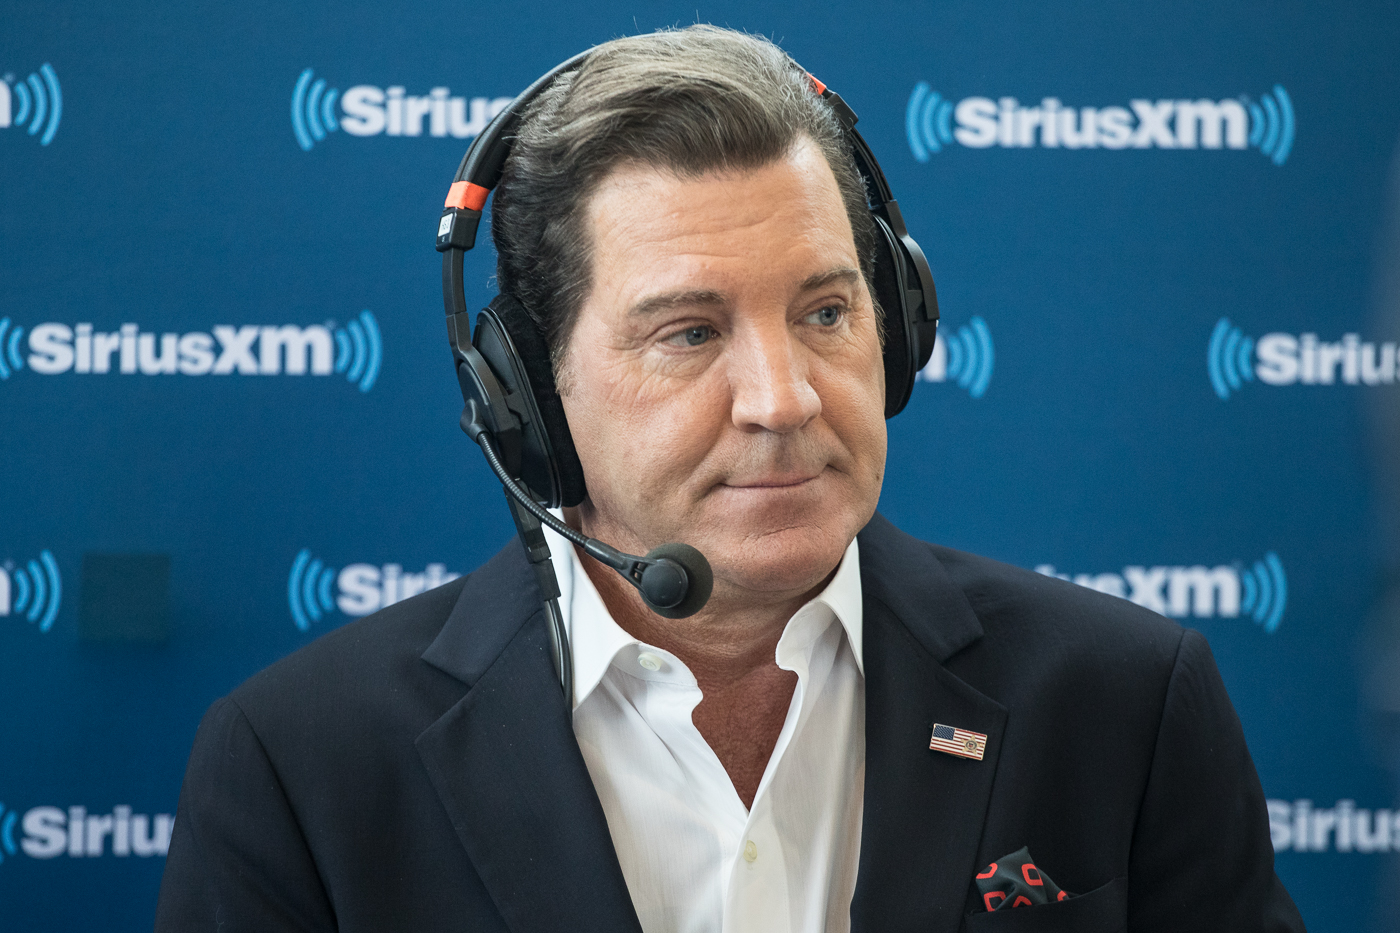 Fox News host Eric Bolling